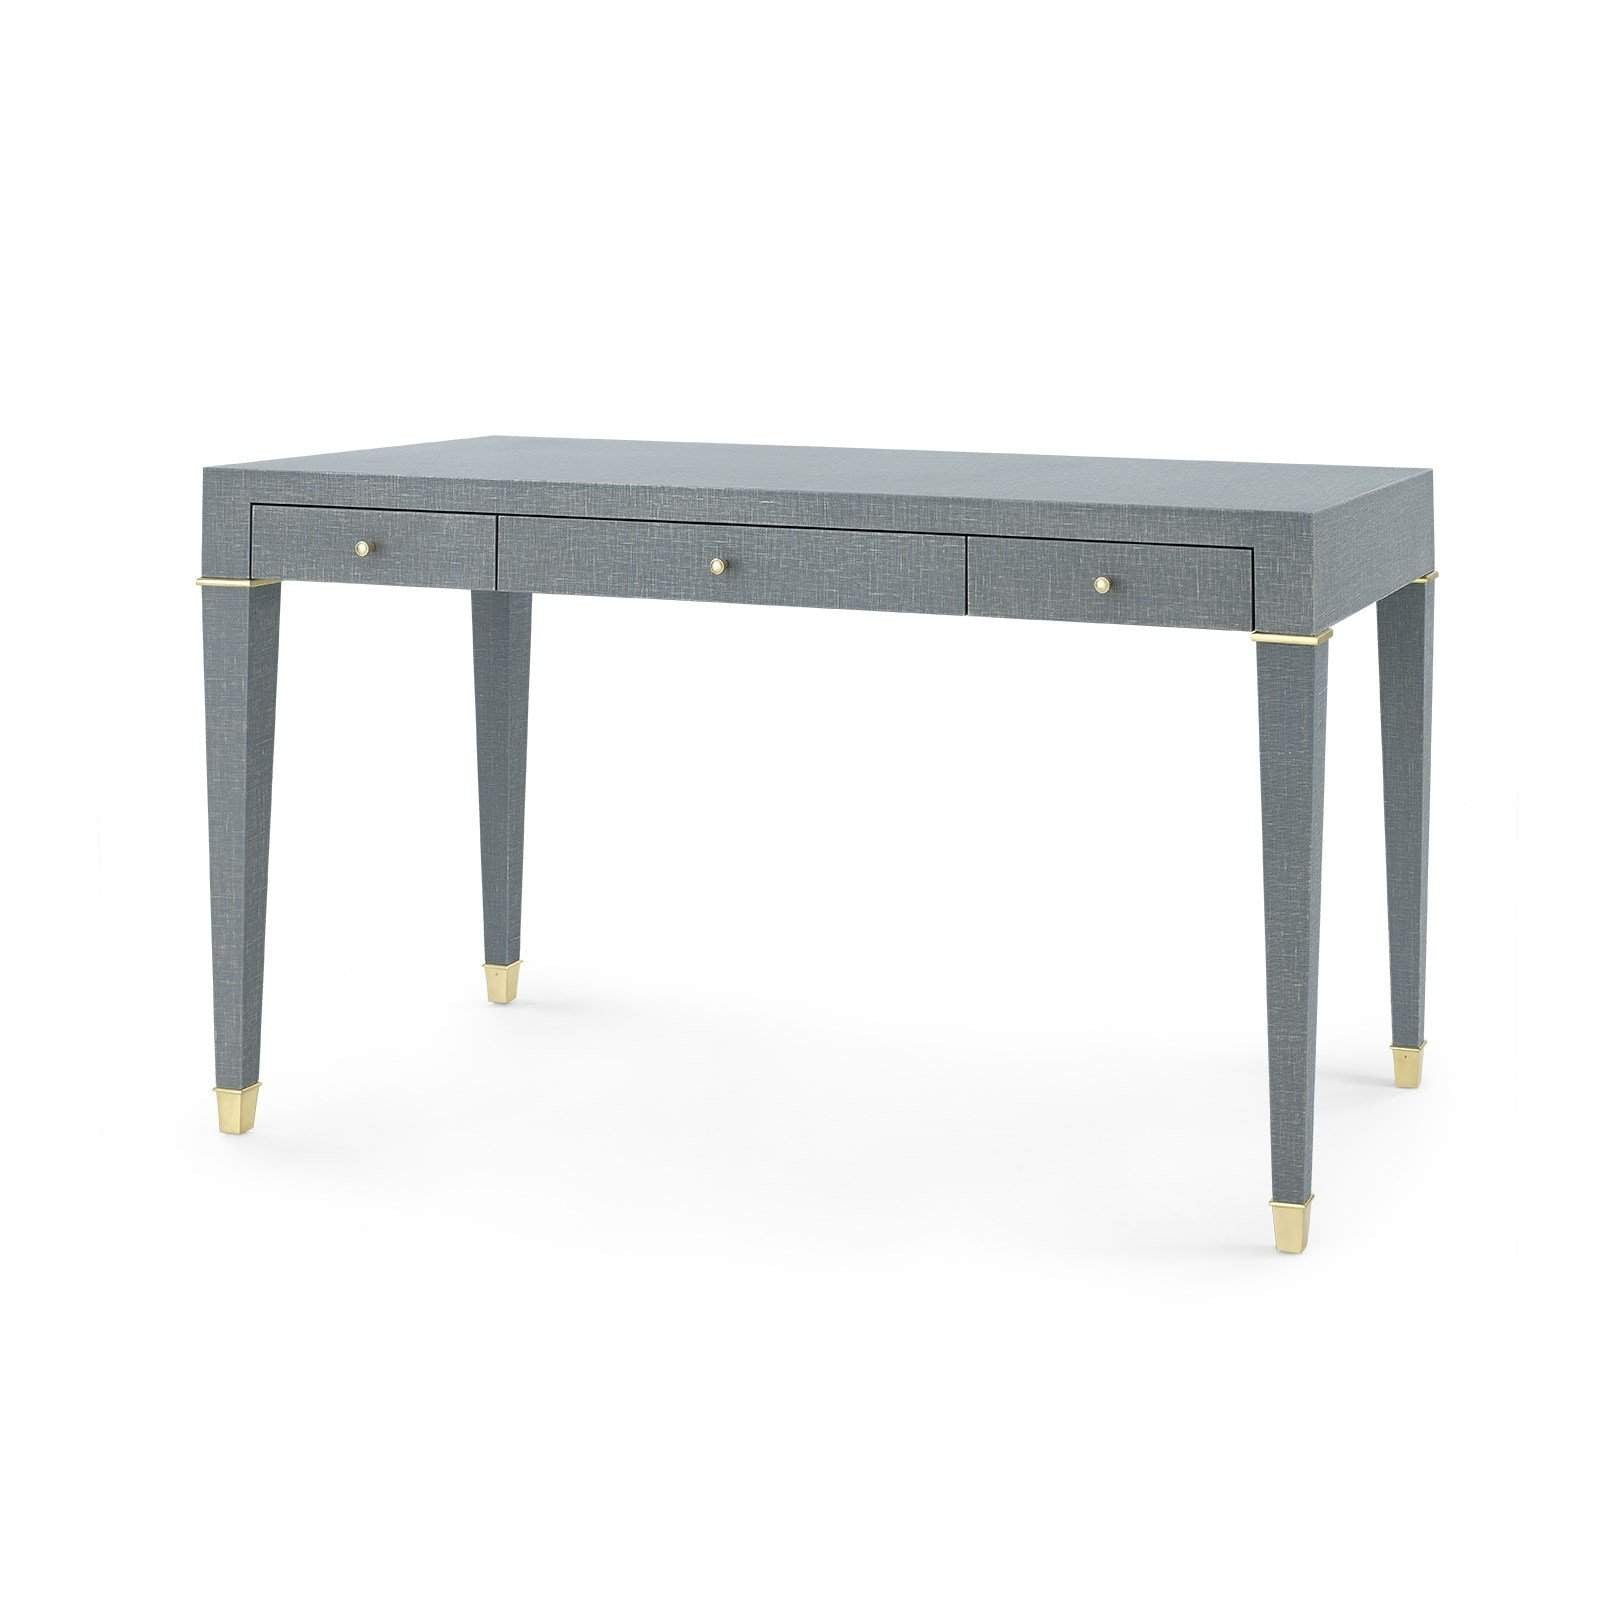 Bungalow 5 - CLAUDETTE DESK in GRAY-Bungalow 5-Blue Hand Home